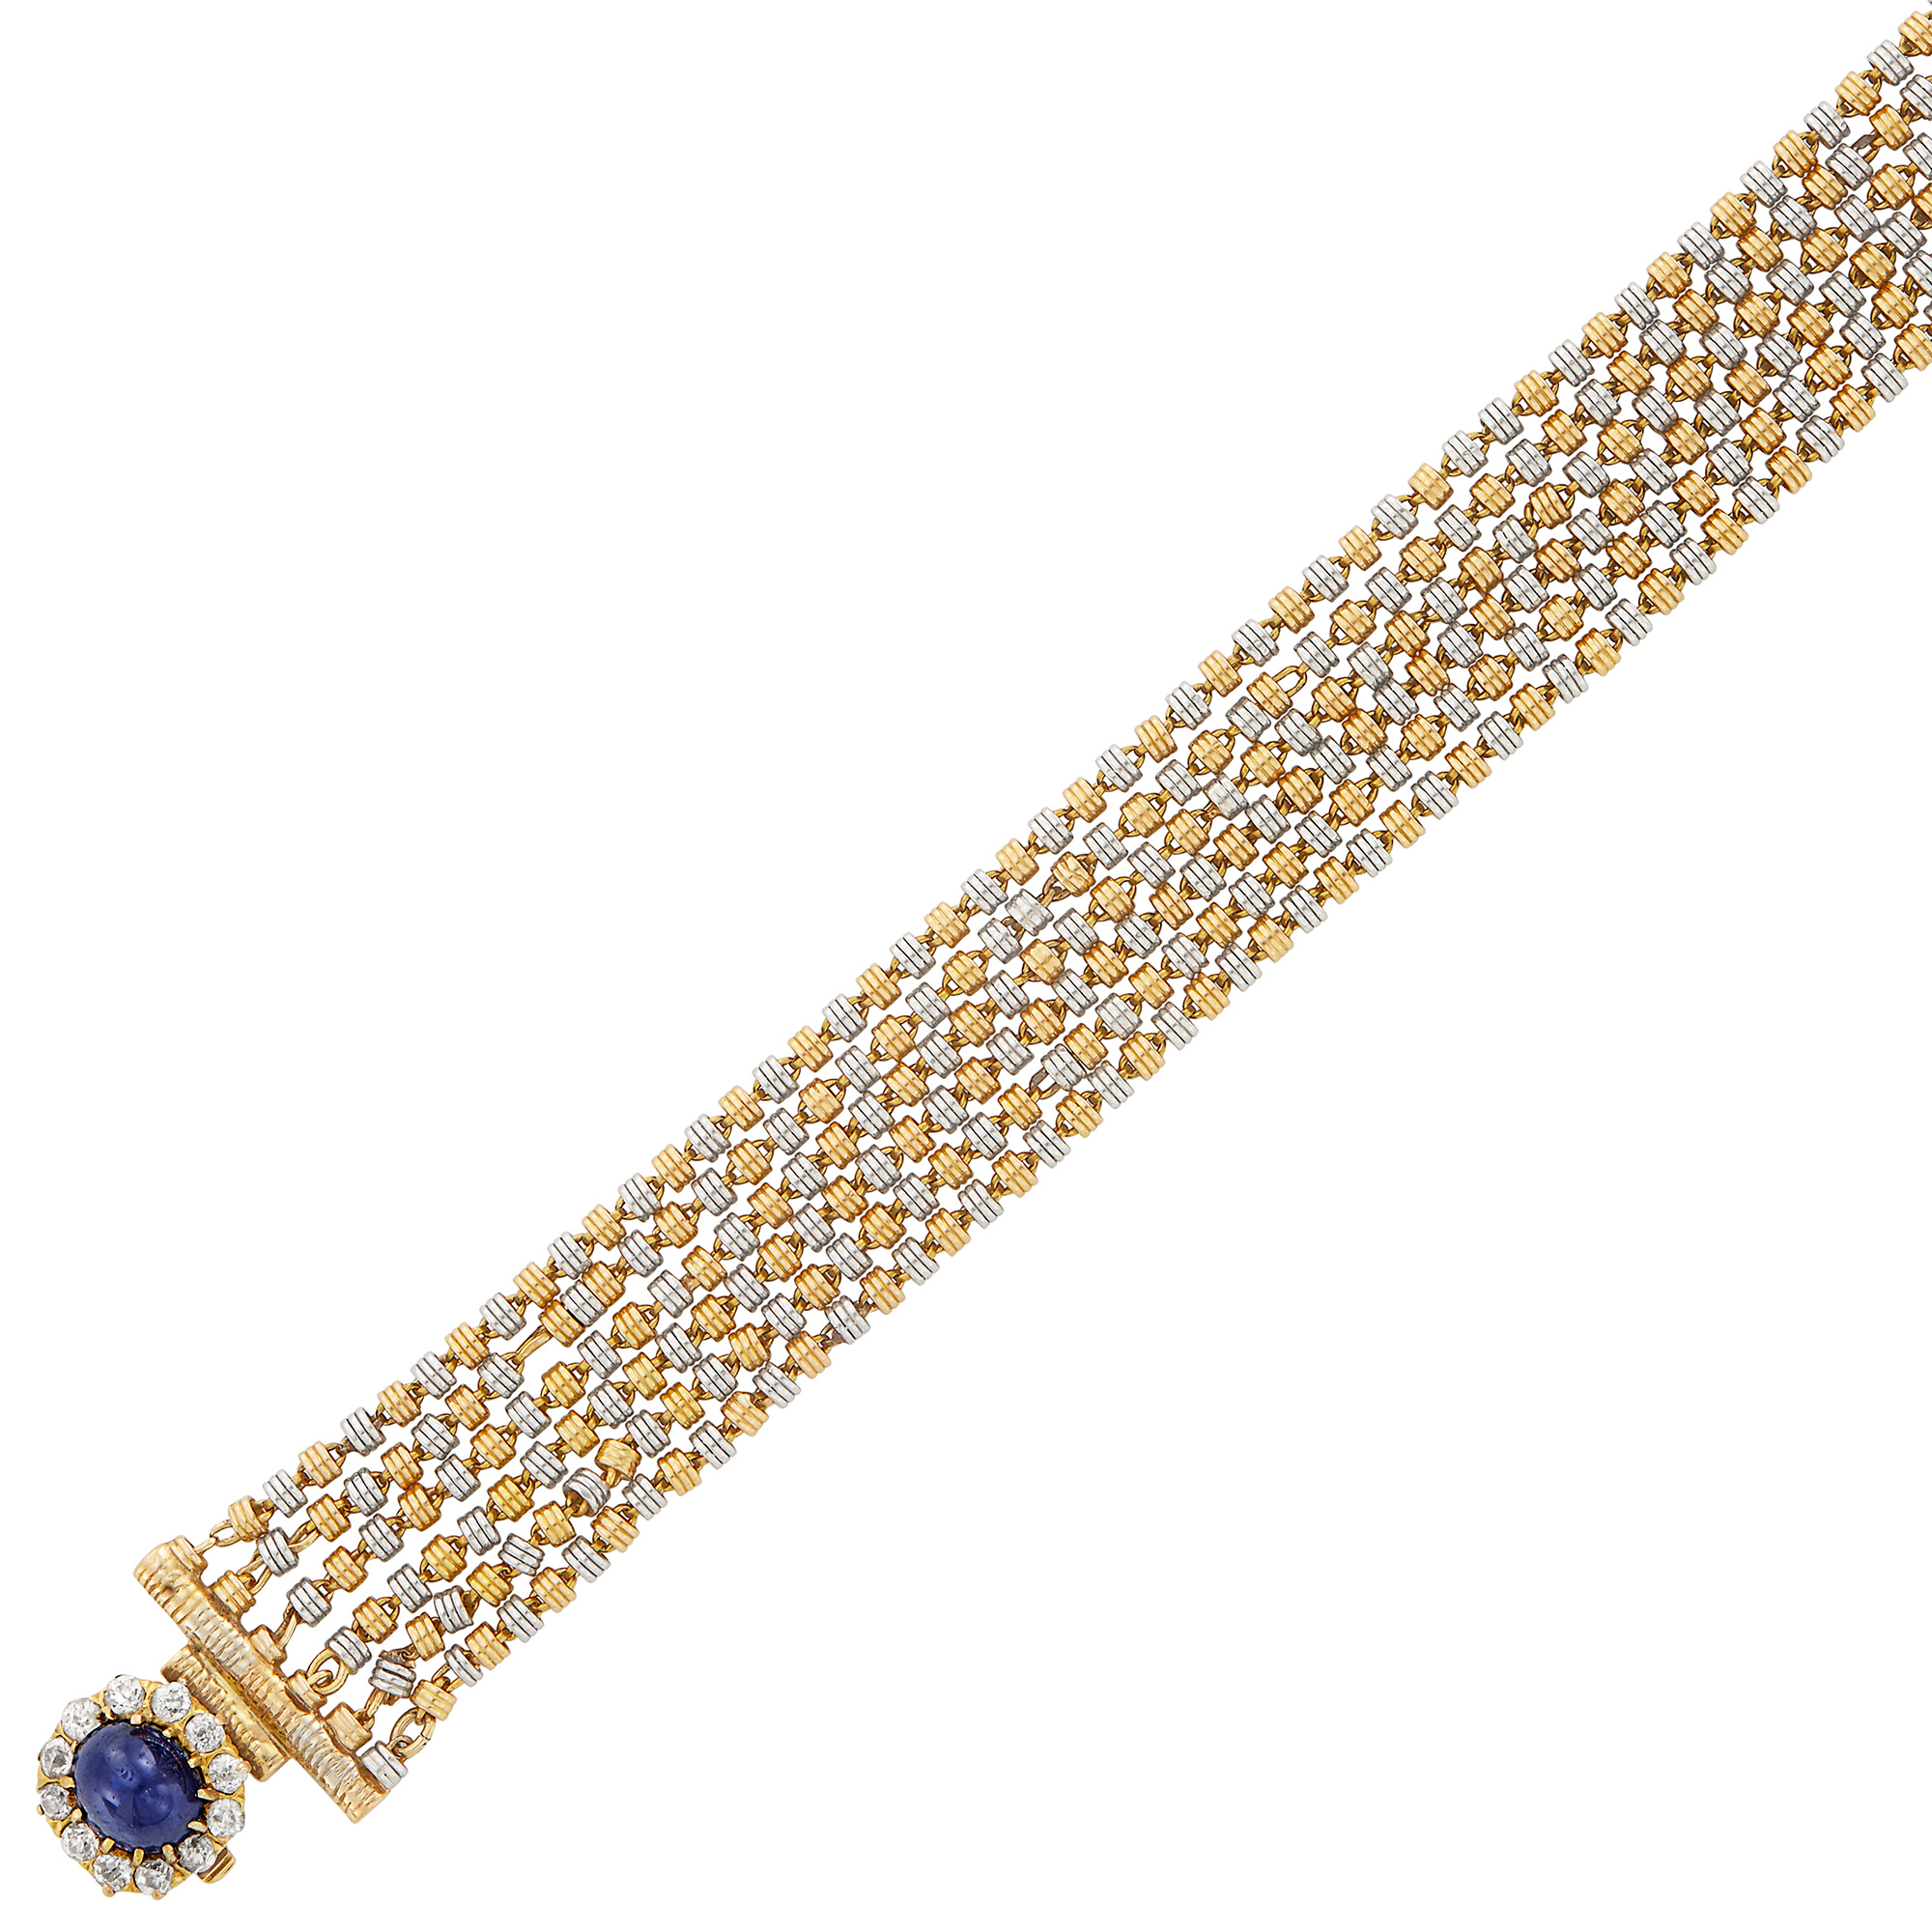 Lot image - Antique Six Strand Gold, Platinum, Cabochon Sapphire and Diamond Bracelet